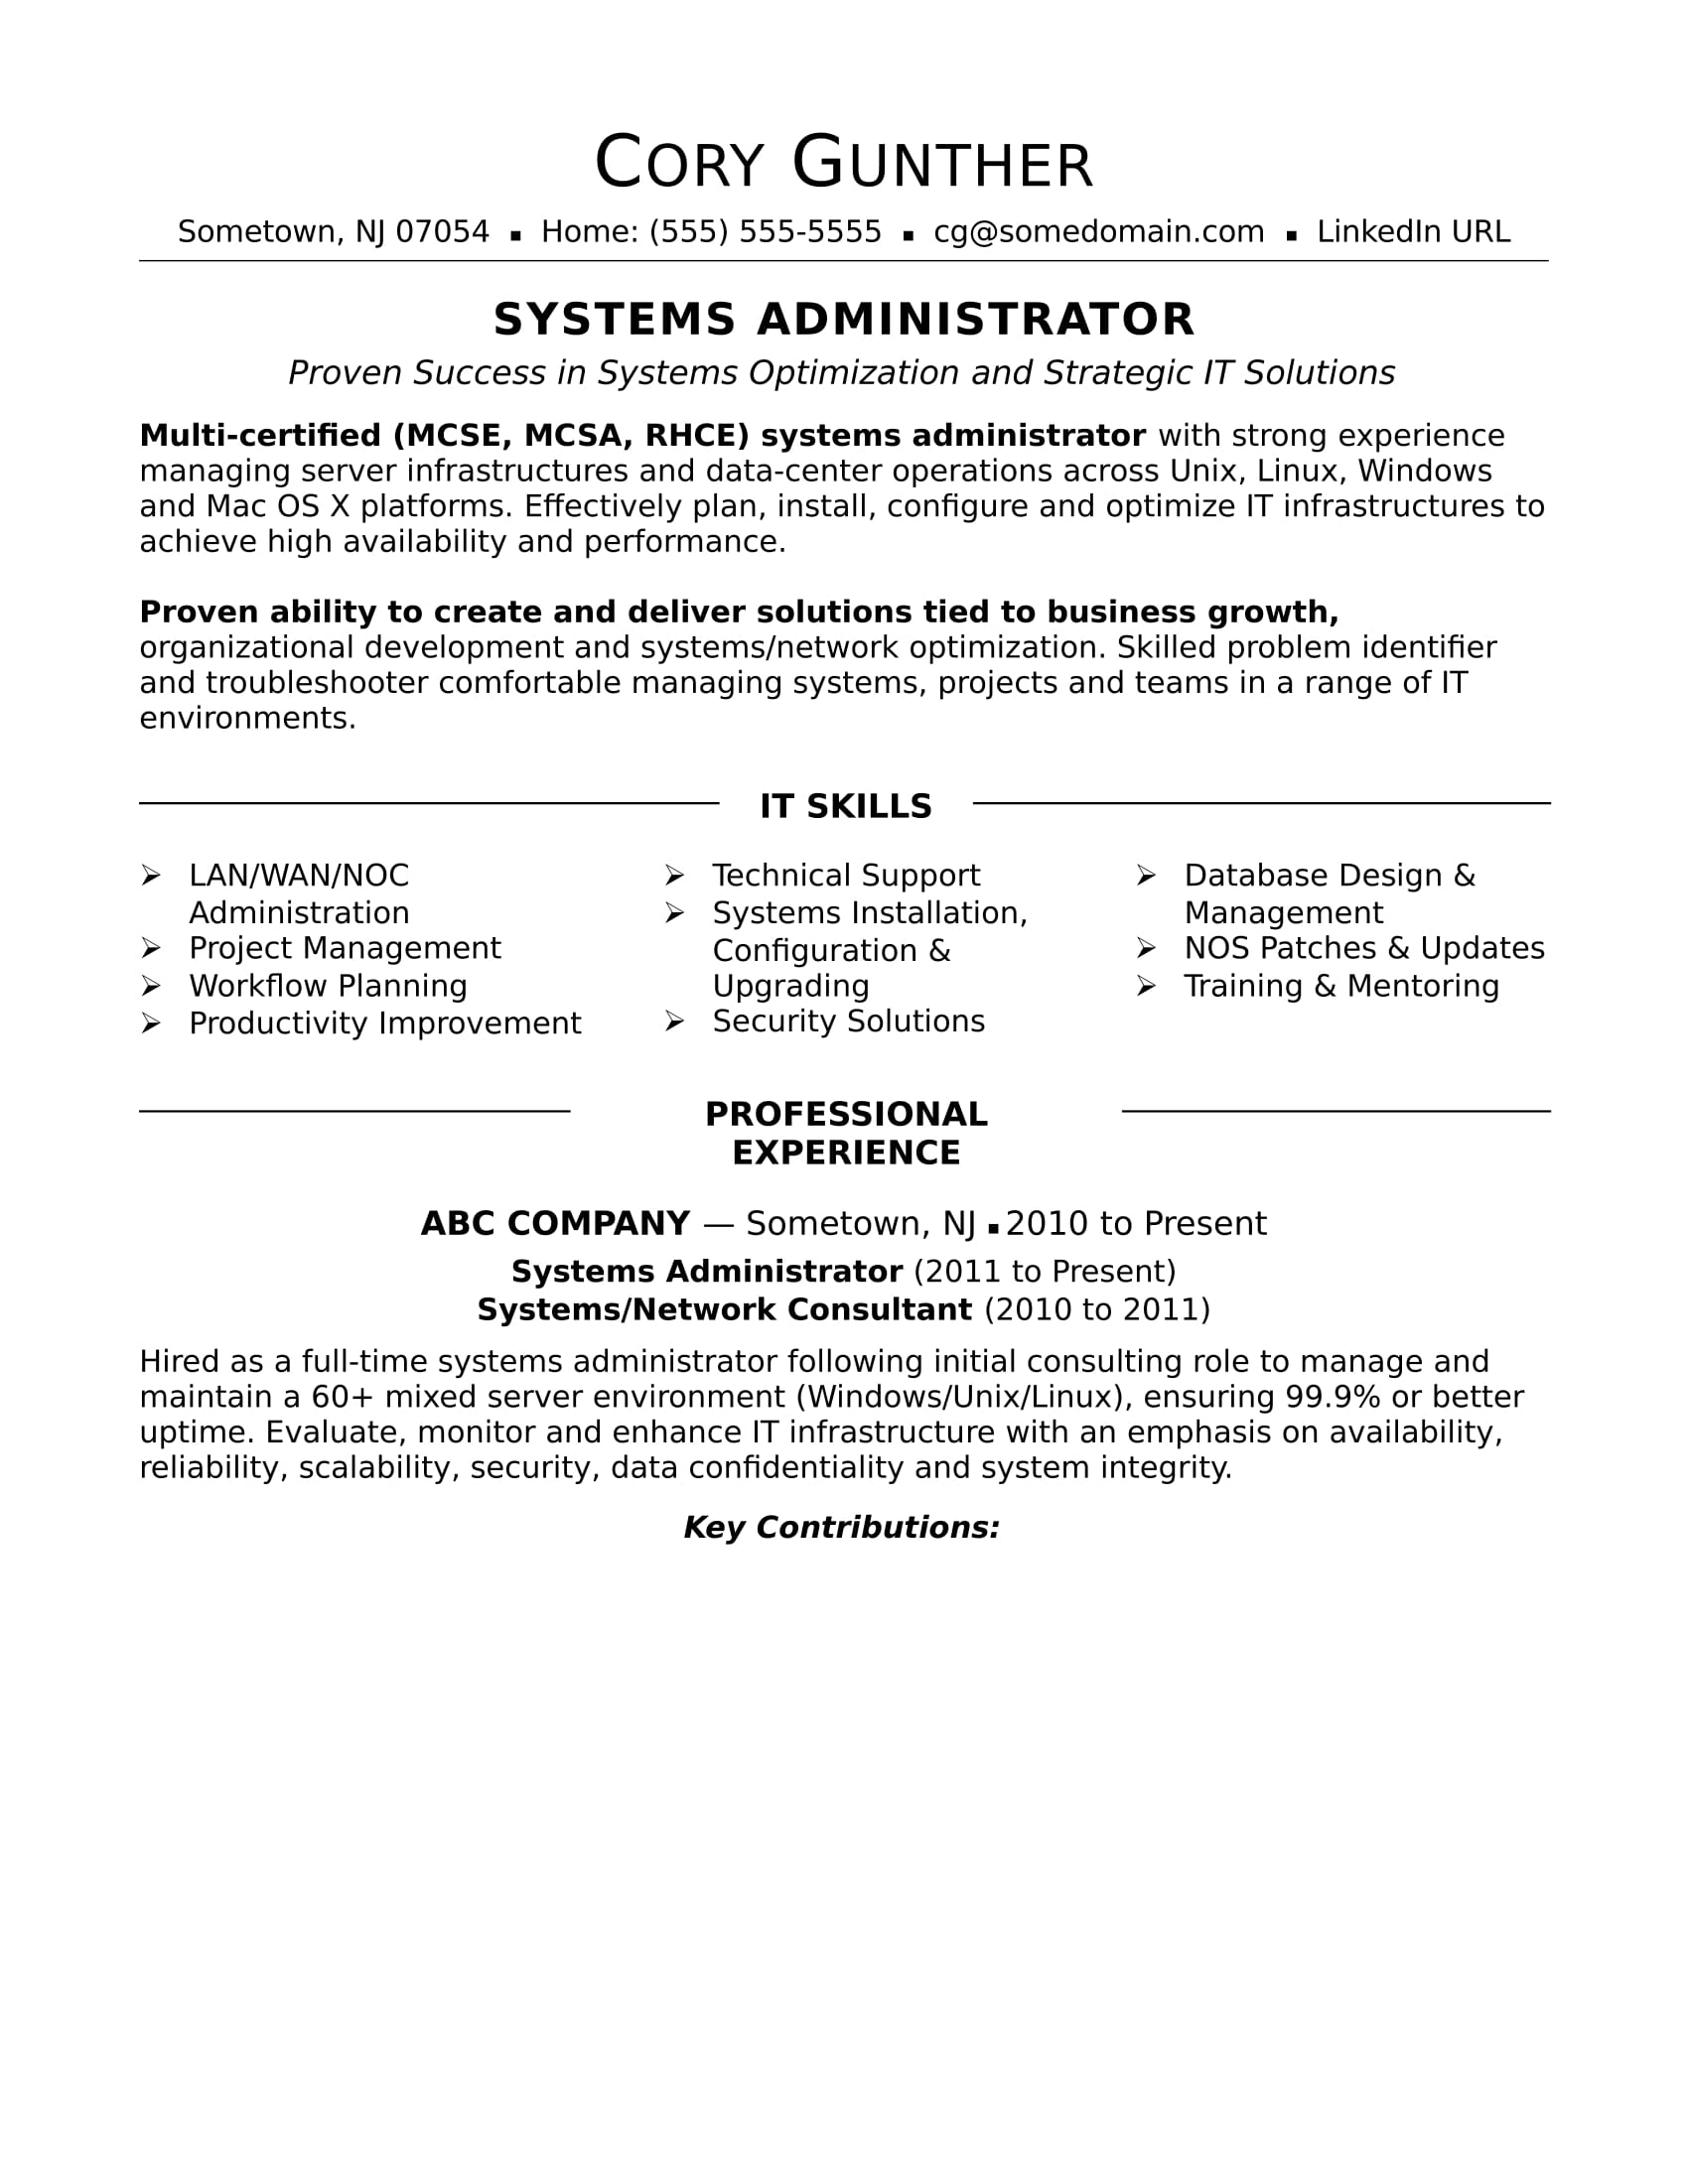 sample resume for an experienced systems administrator monster system admin format Resume System Admin Resume Format